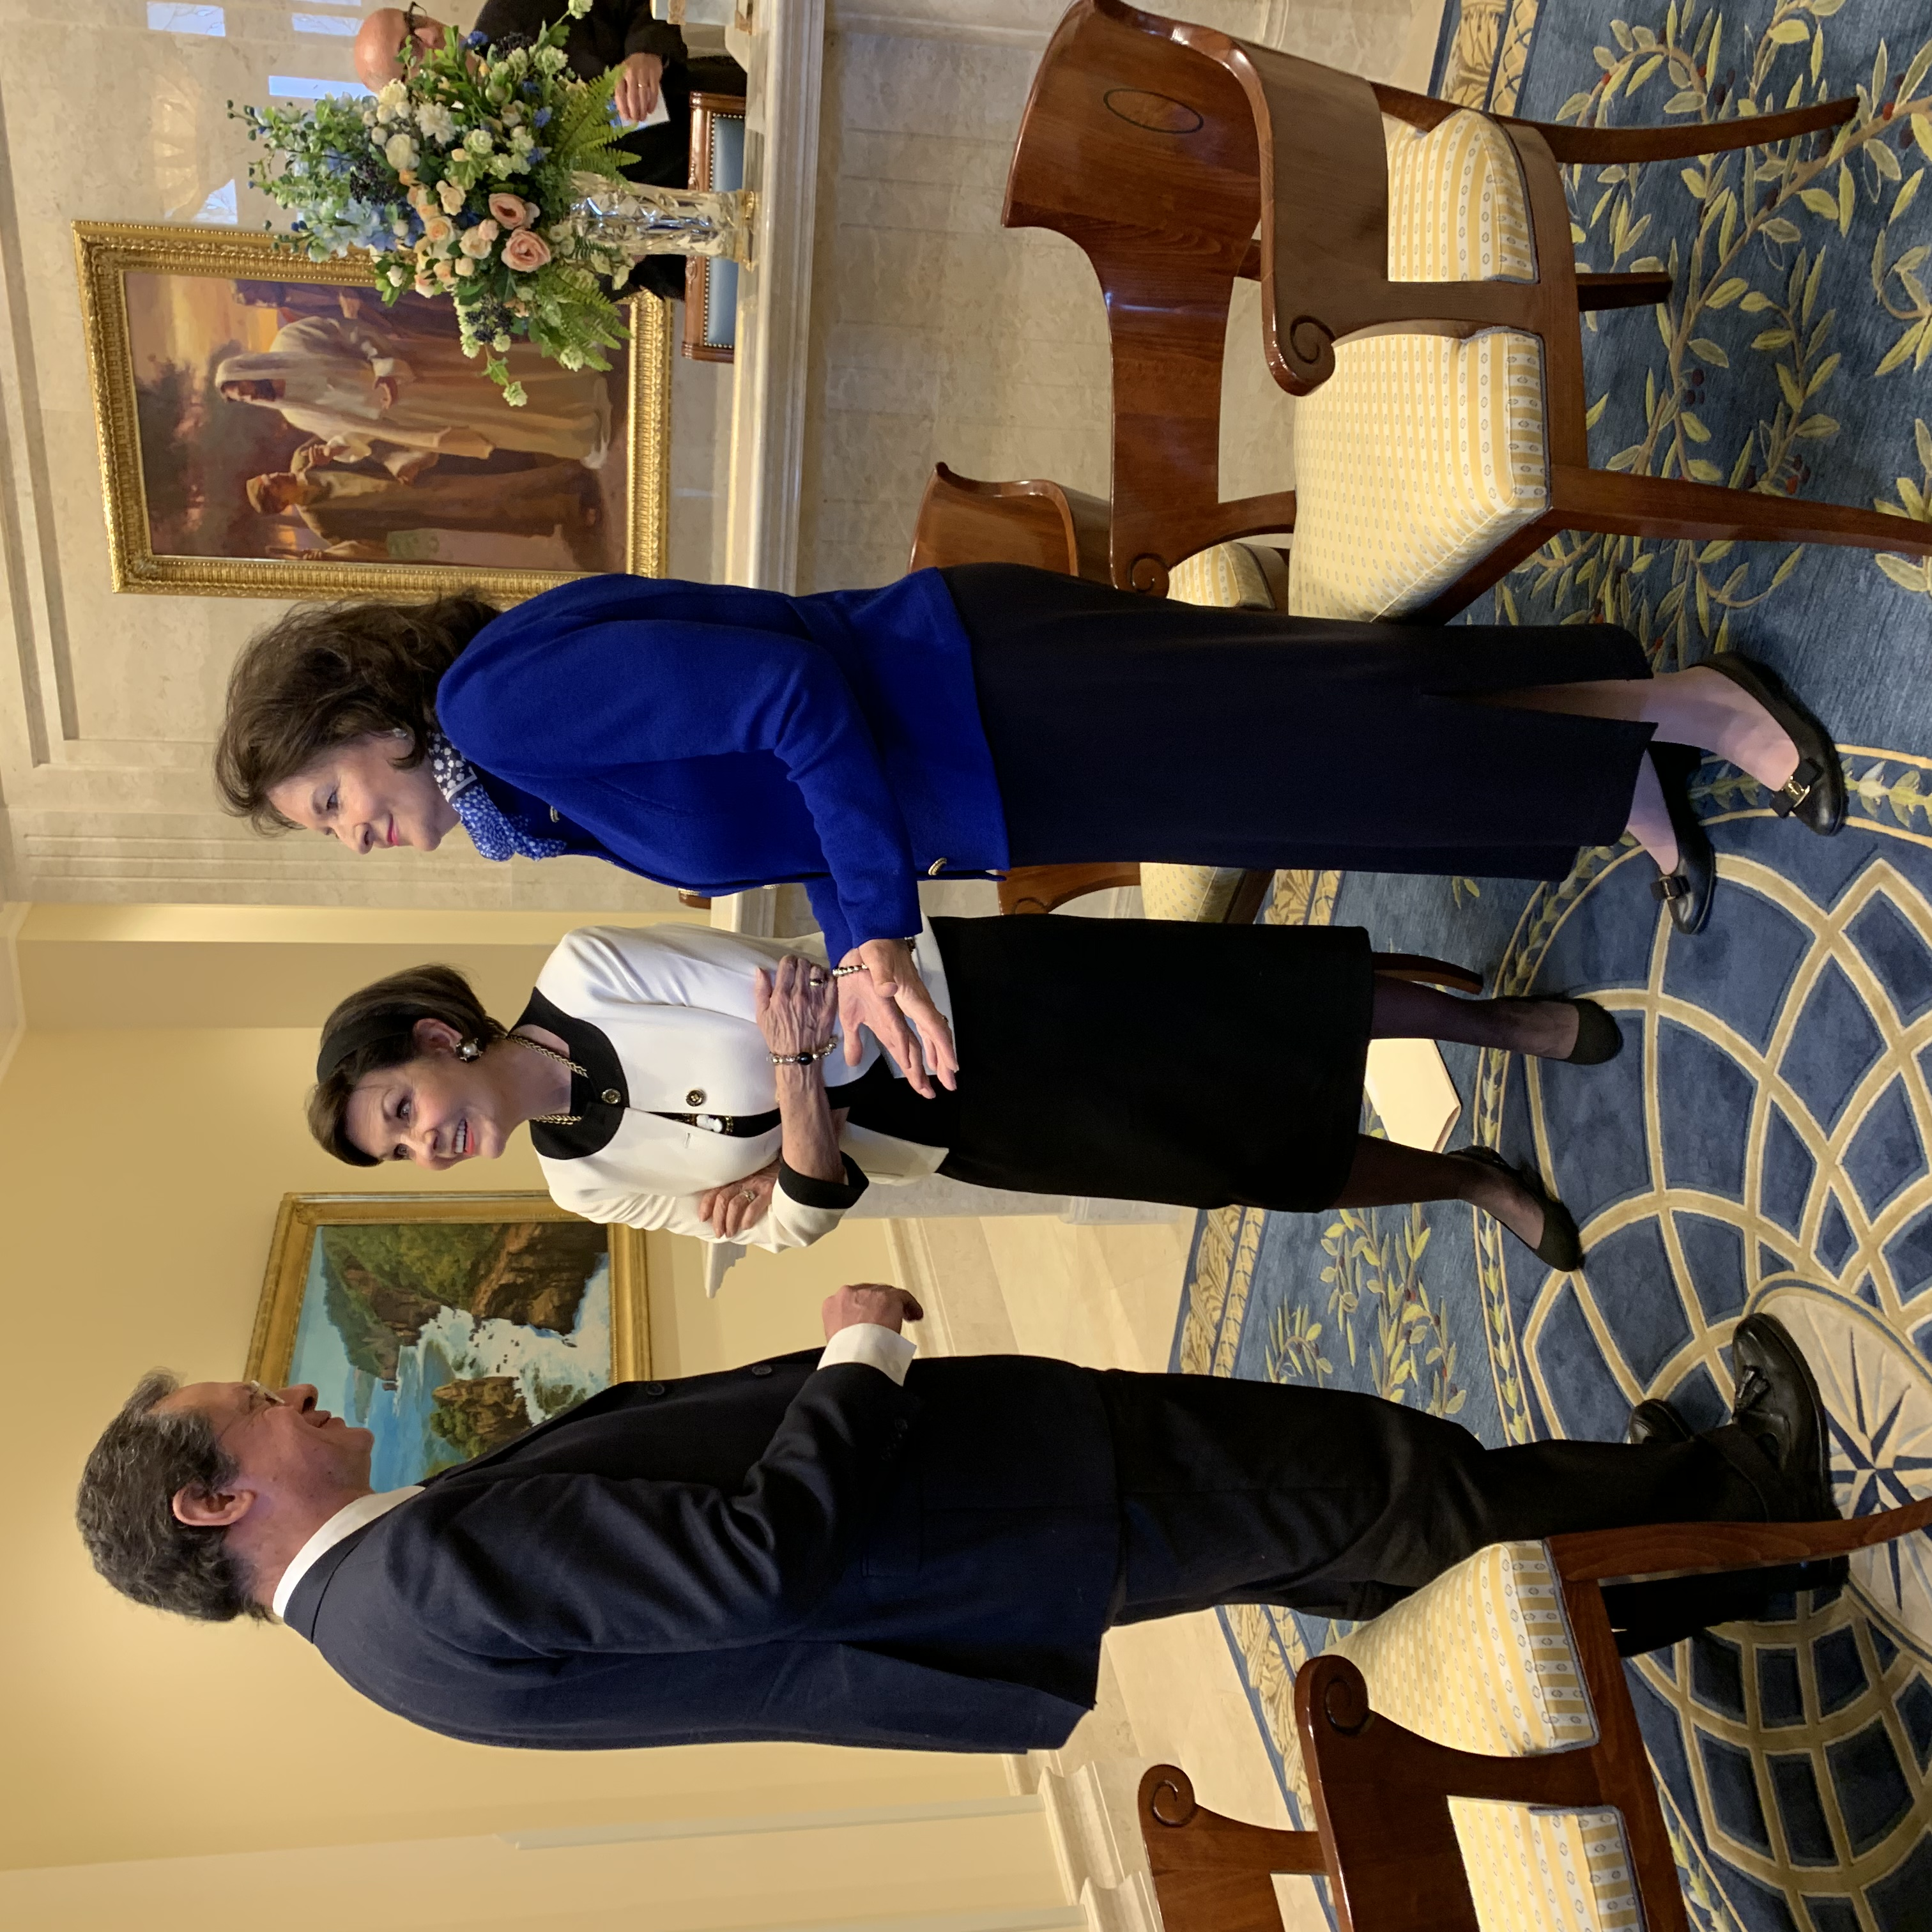 Sister Wendy Nelson, right, and Sister Kristen Oaks meet with Paolo Mastrolilli, the New York correspondent for the national Italian newspaper La Stampa, in the lobby of the Rome Italy Temple on March 11.